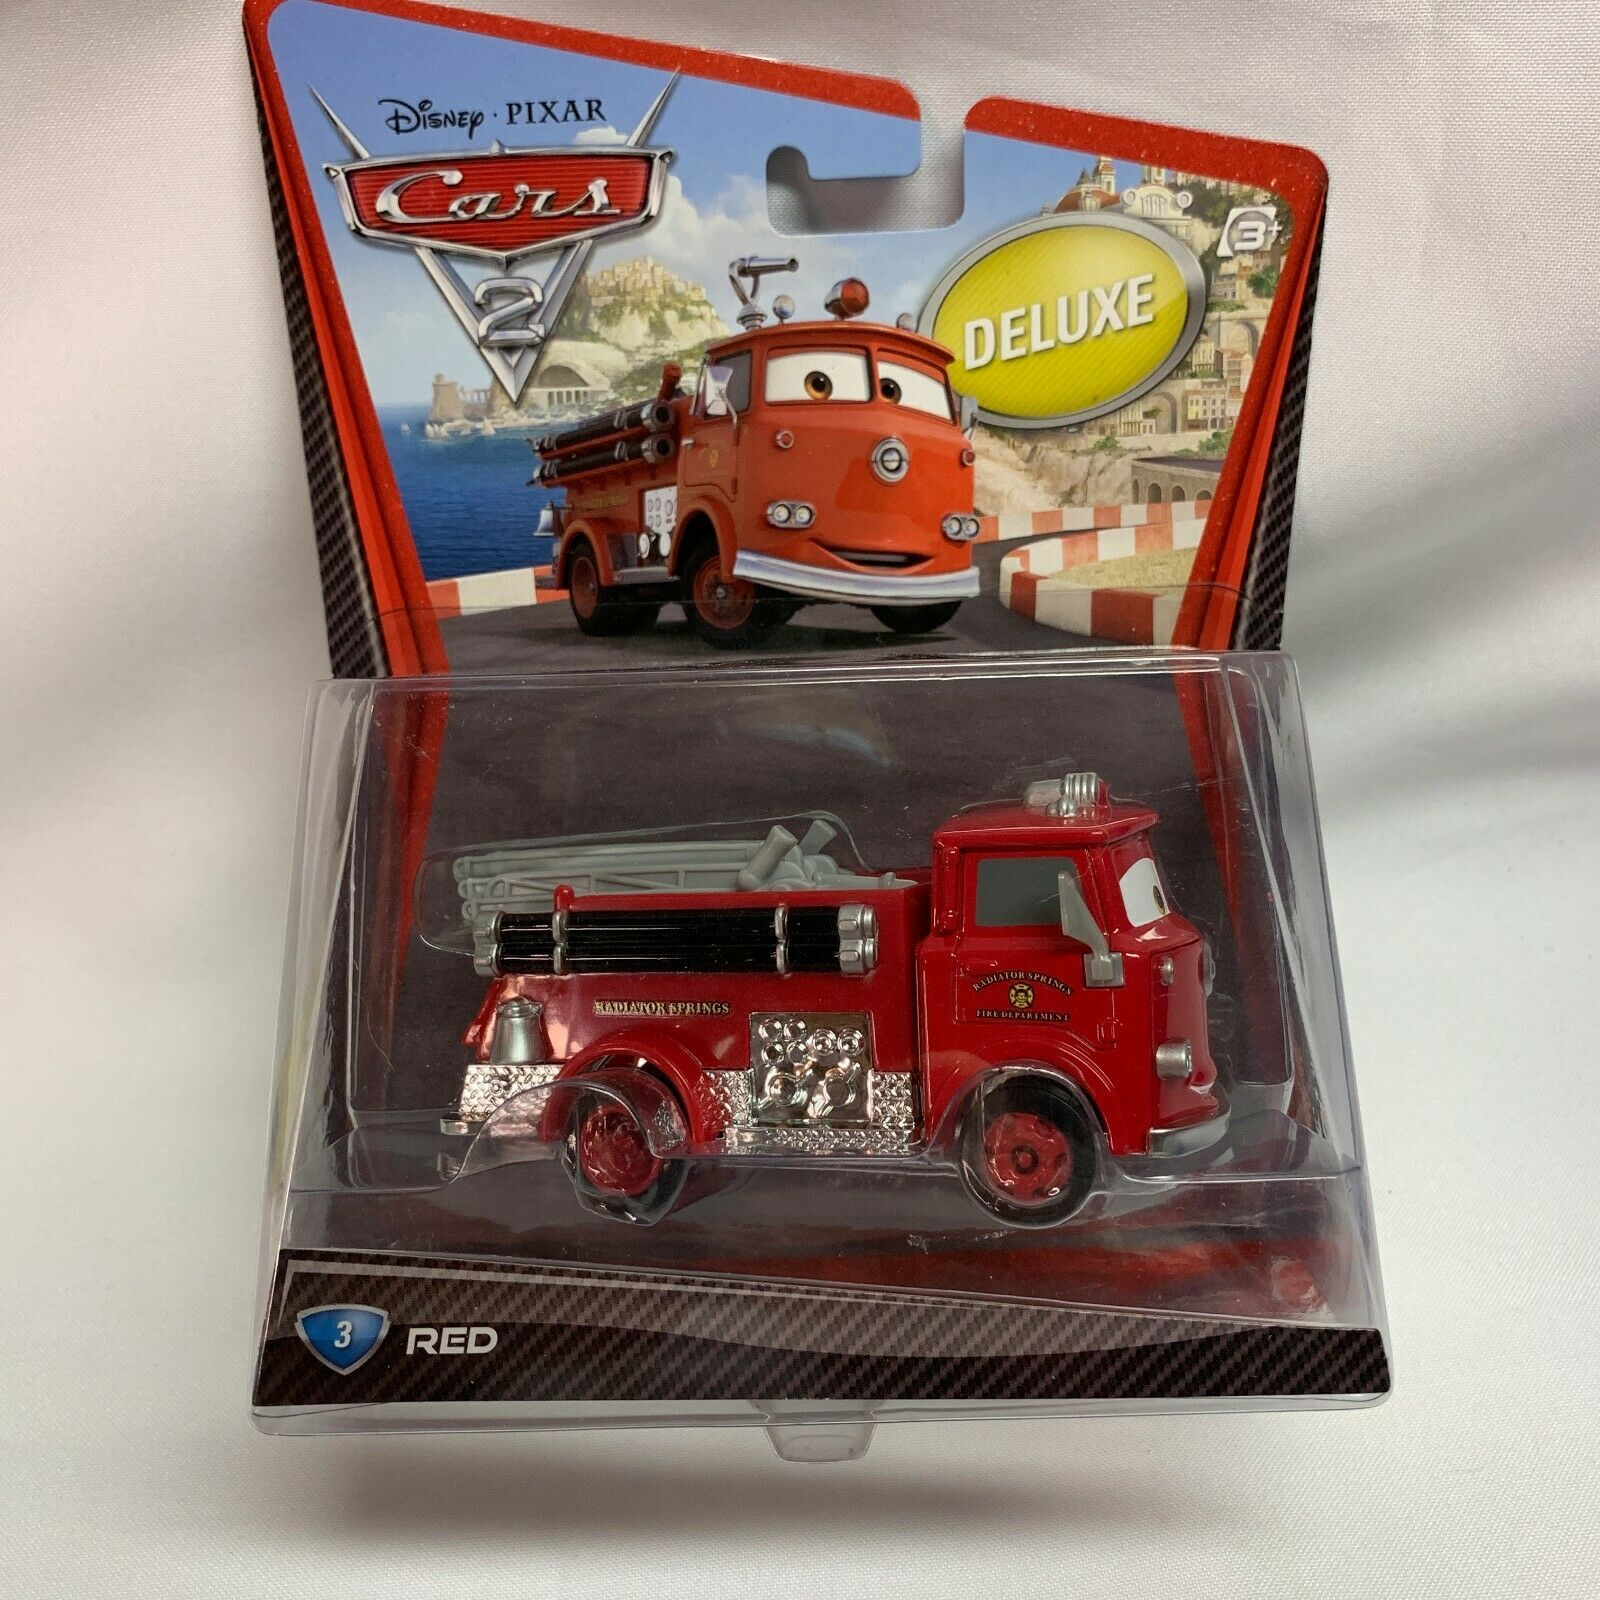 Disney Deluxe PIXAR Cars 2 RED #3 Fire Engine 2010